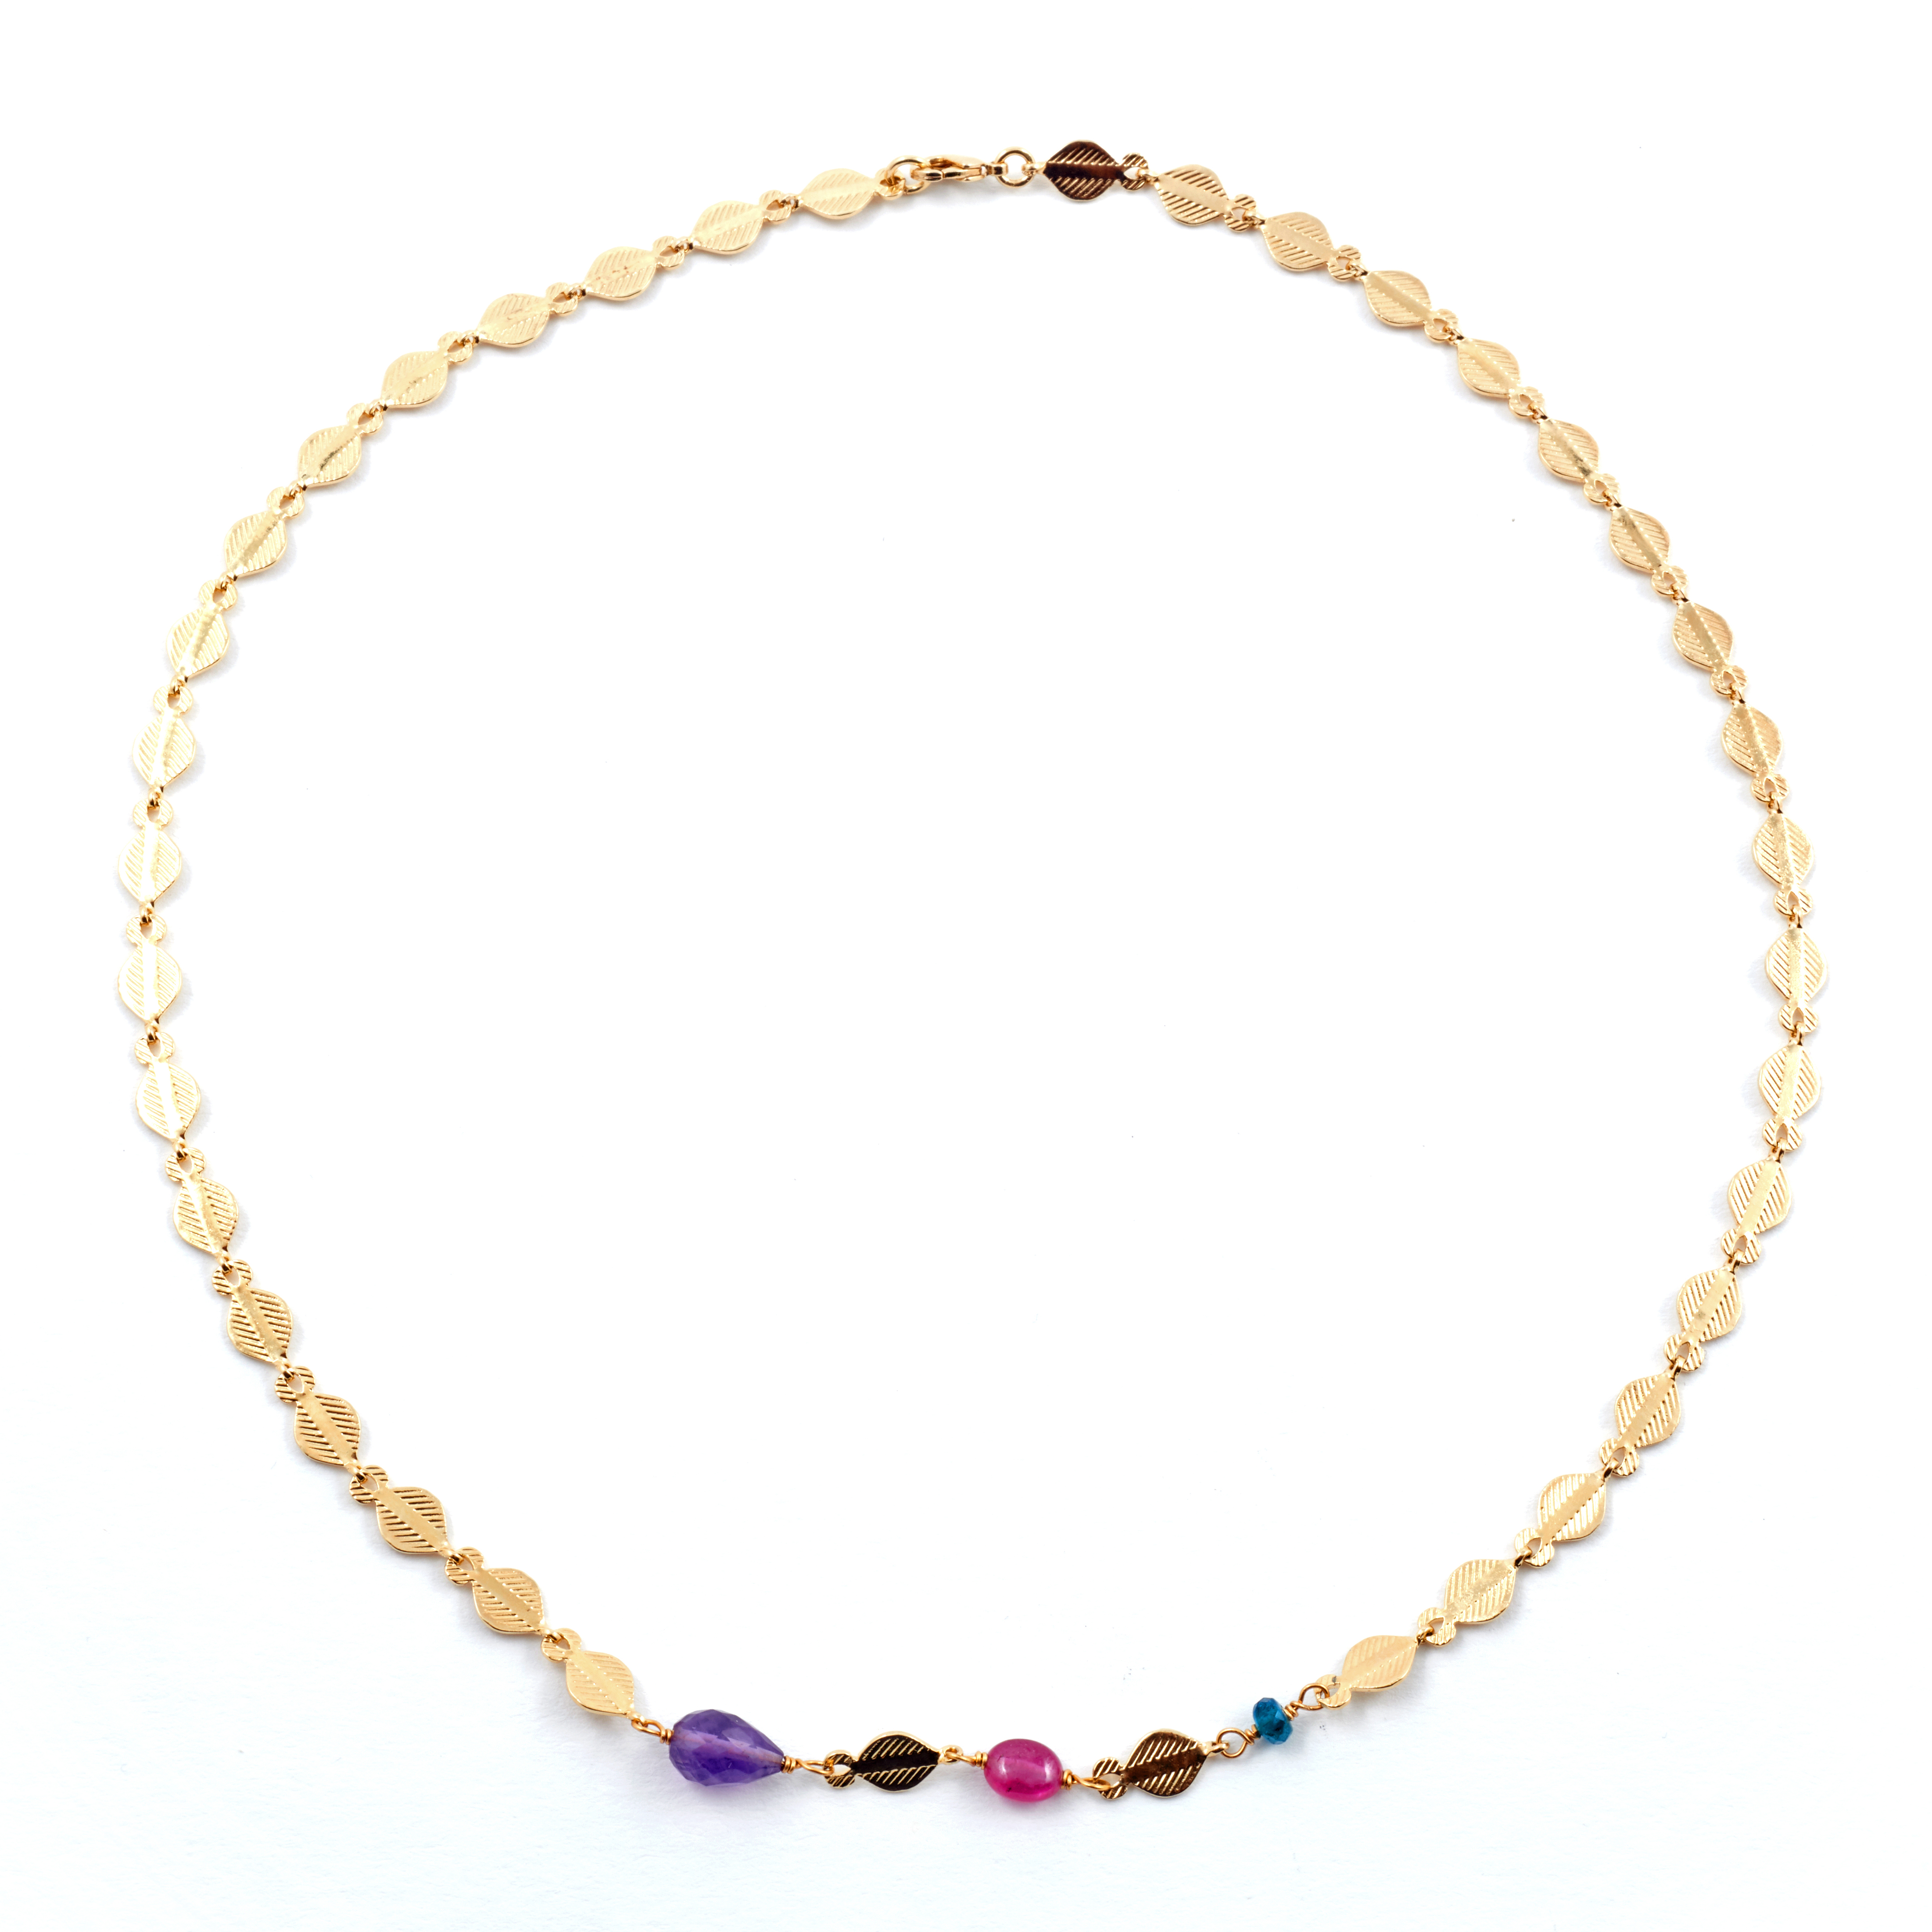 Gemstone necklace by Mirabelle